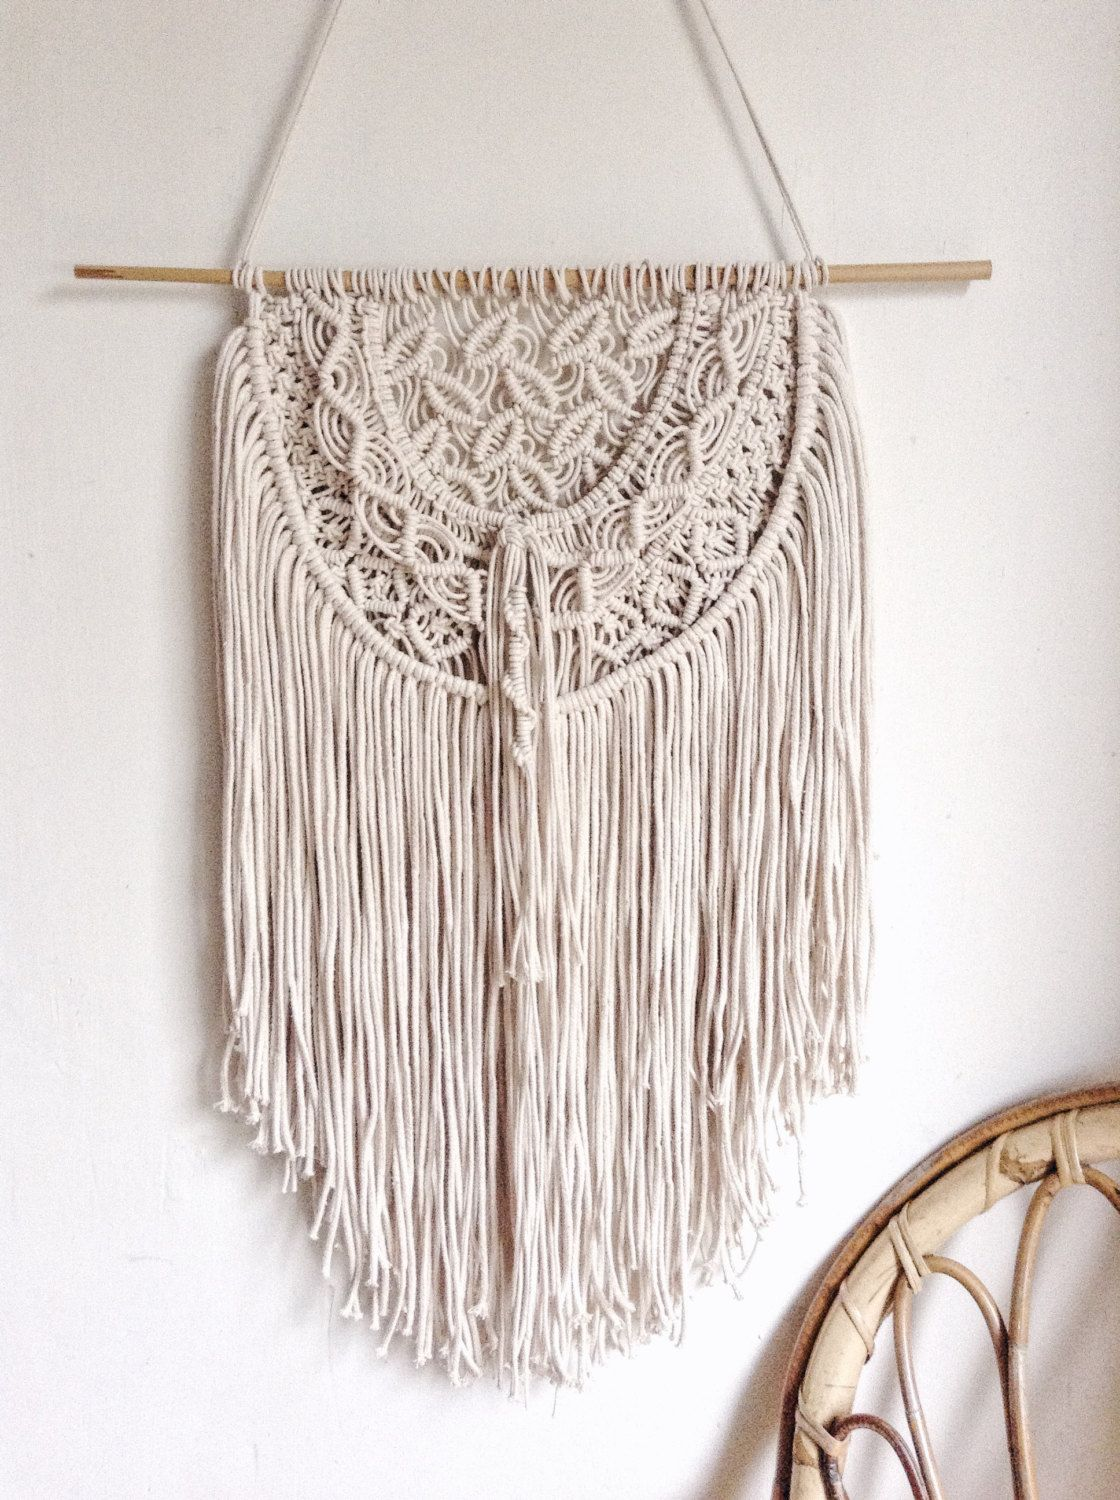 Wall Hangings Etsy macrame wall hangings | macrame wall hangings, macrame and wall